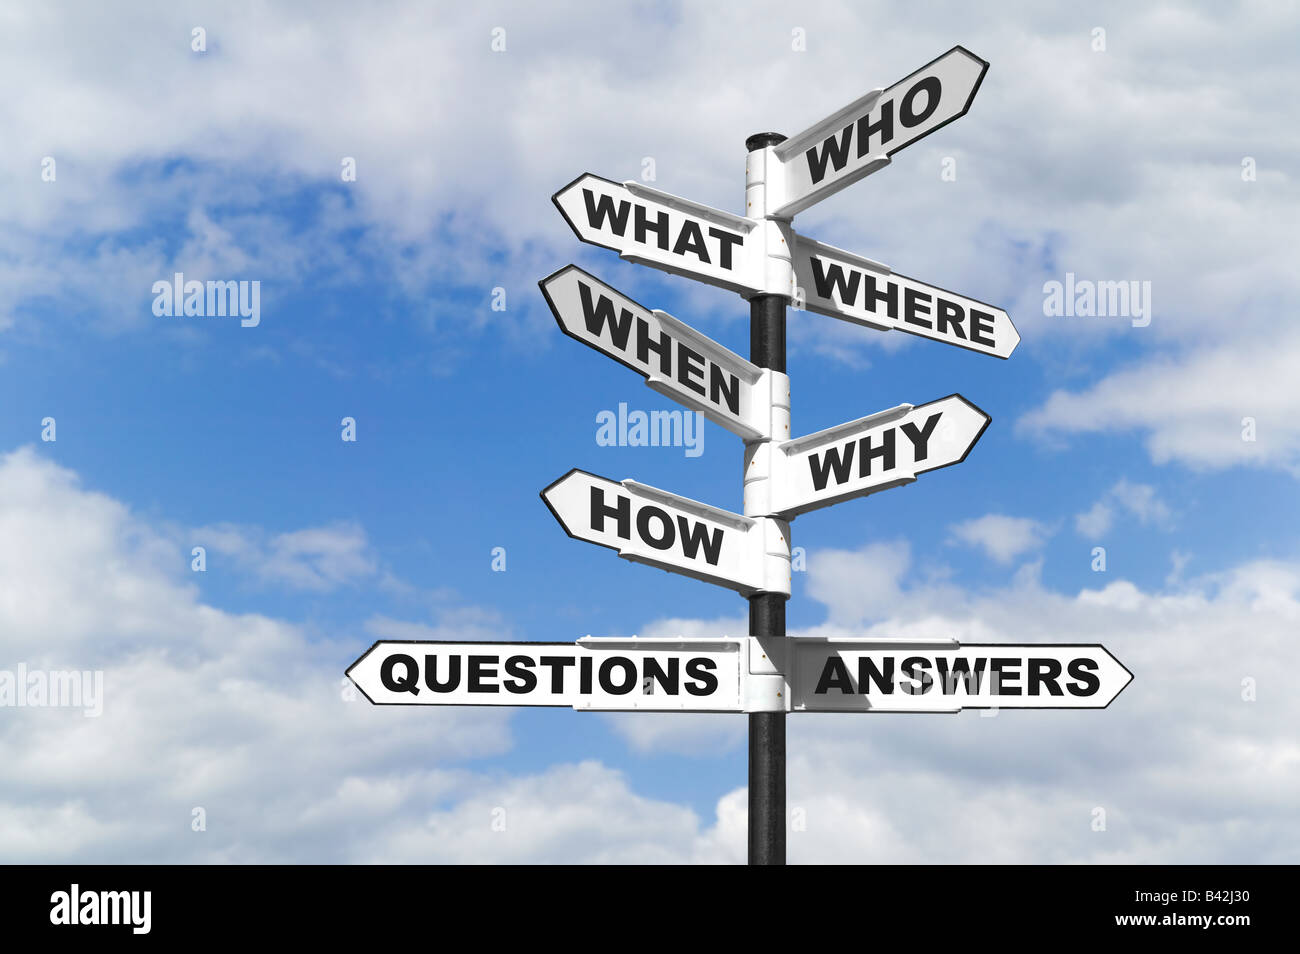 Concept image of the six most common questions and answers on a signpost - Stock Image